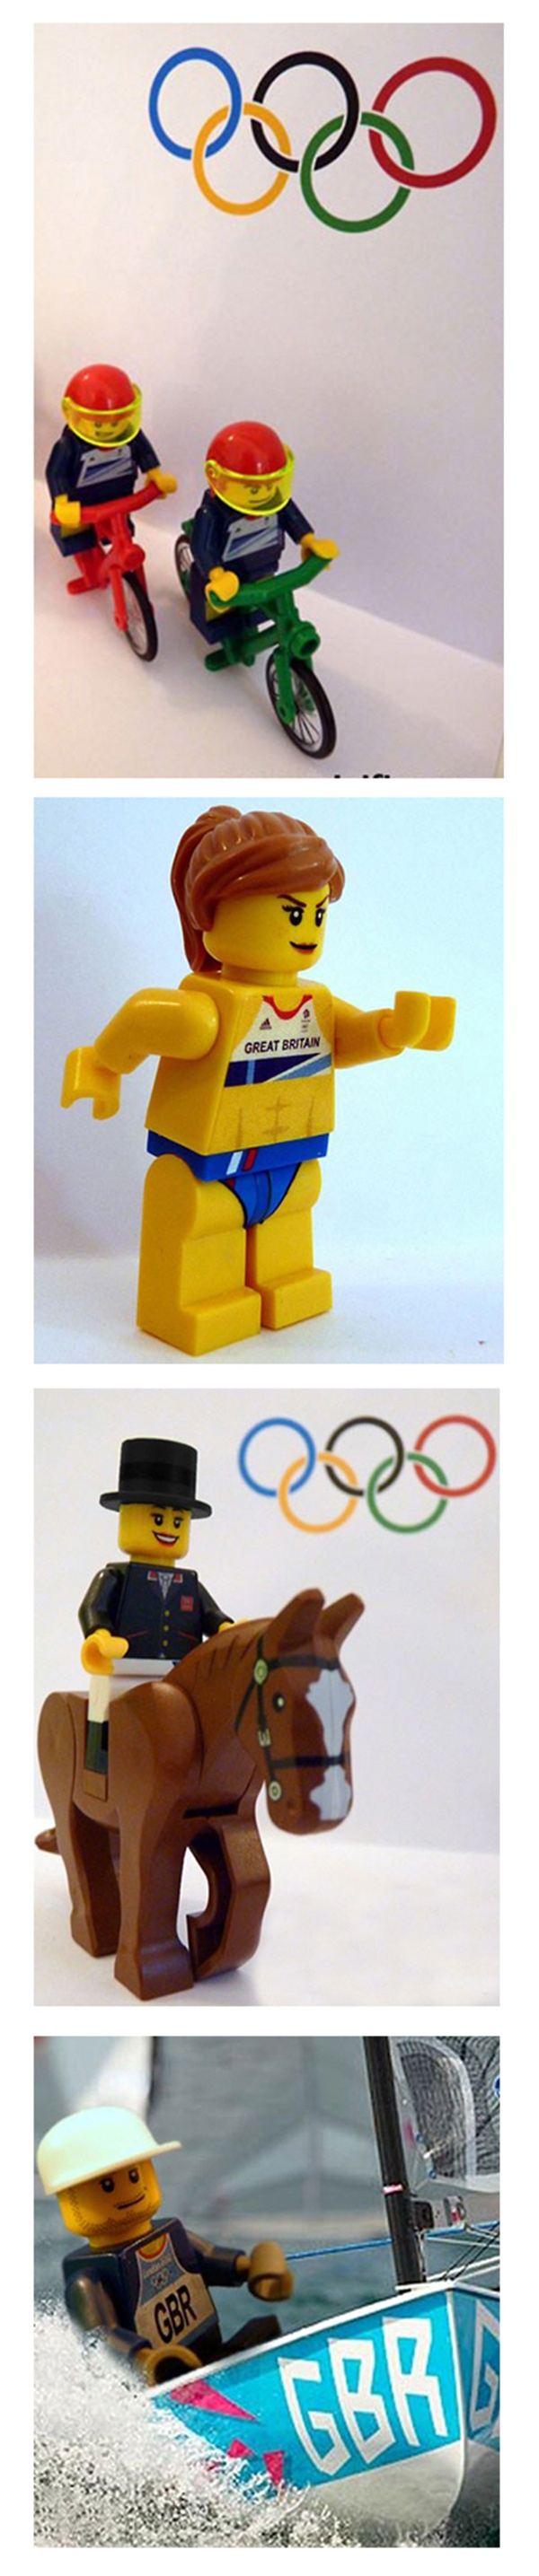 London 2012 Olympics: LEGO minifigs of Team GB gold medal winners